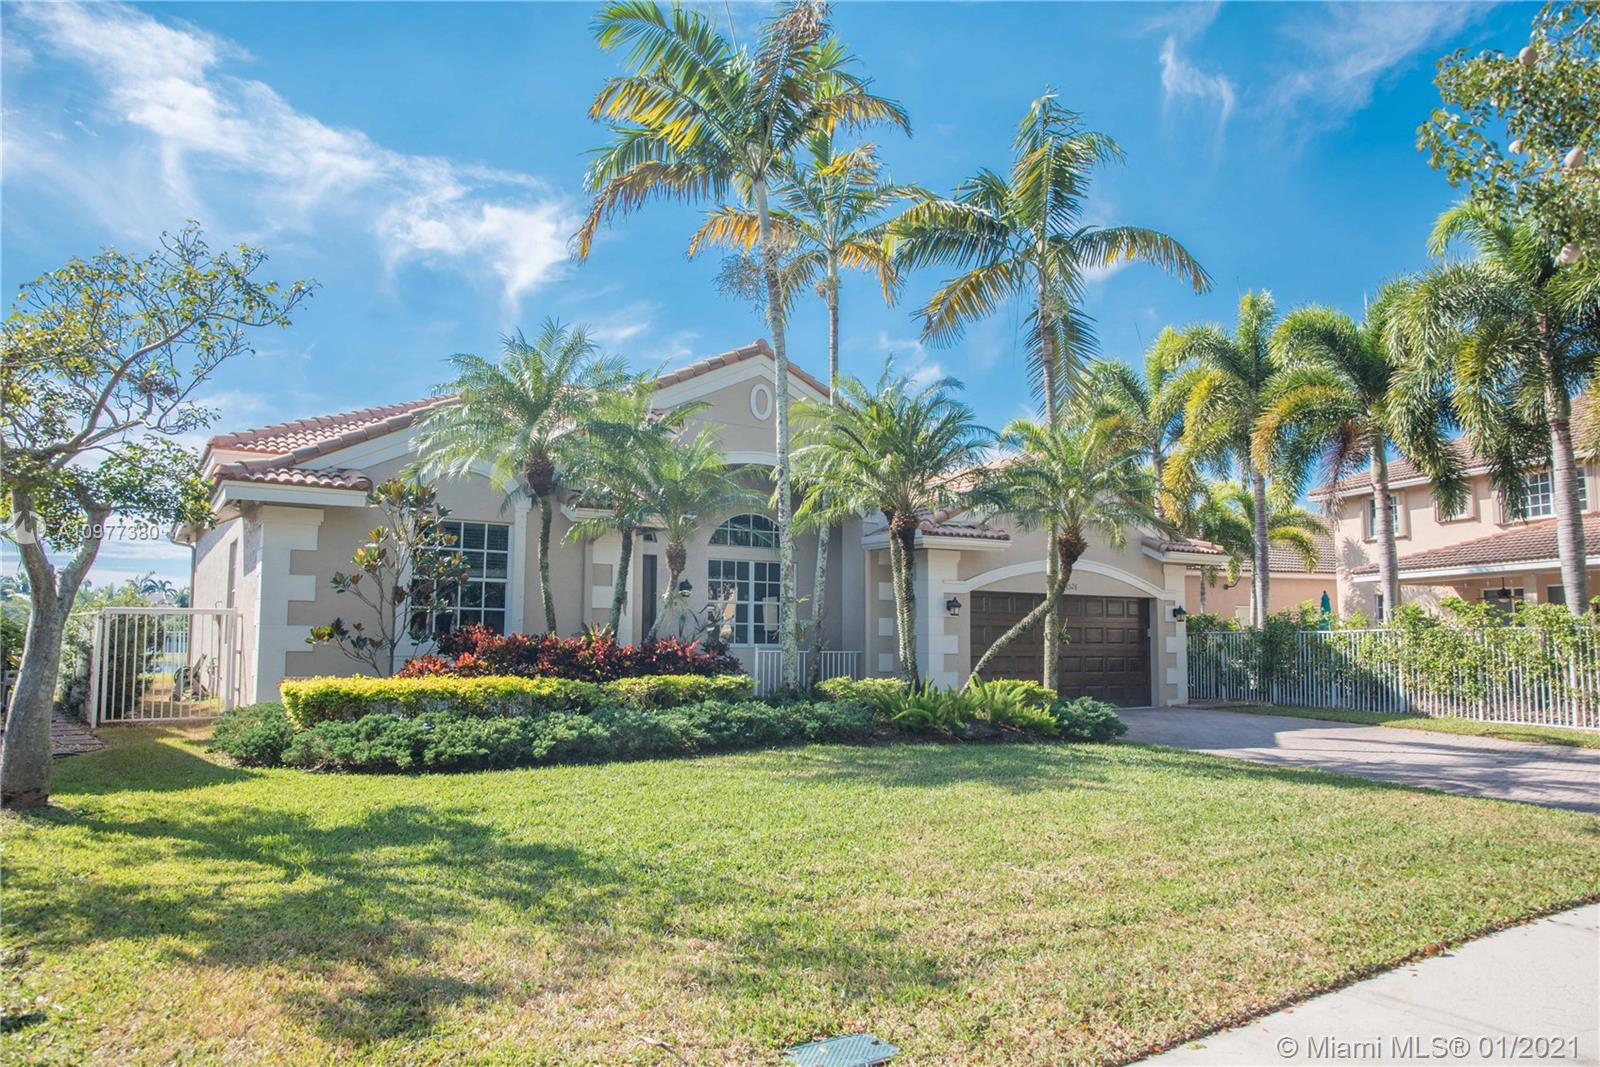 The City of Weston was ranked third safest city in the U.S. based on cities with populations over 50,000 and top rated A schools. Don't miss this stunning lake view remodeled one story gem to call it home. The property is in Savanna gated community with world class amenities and club house, nested in a cul-de-sac very quiet and beautiful street. Features new open kitchen with an island and stainless steel appliances, Electrolux washer and dryer. New flooring and beautiful backyard. Split floor plan, his and hers walk-in closets, double door in master bedroom, spacious bathroom with jacuzzi tub, great views of the lake from the master. Newer A/C Carrier unit with NEST control and smart home features, roof freshly cleaned. 20 mins to FLL airport and downtown. 10 mins from Sawgrass Mall.